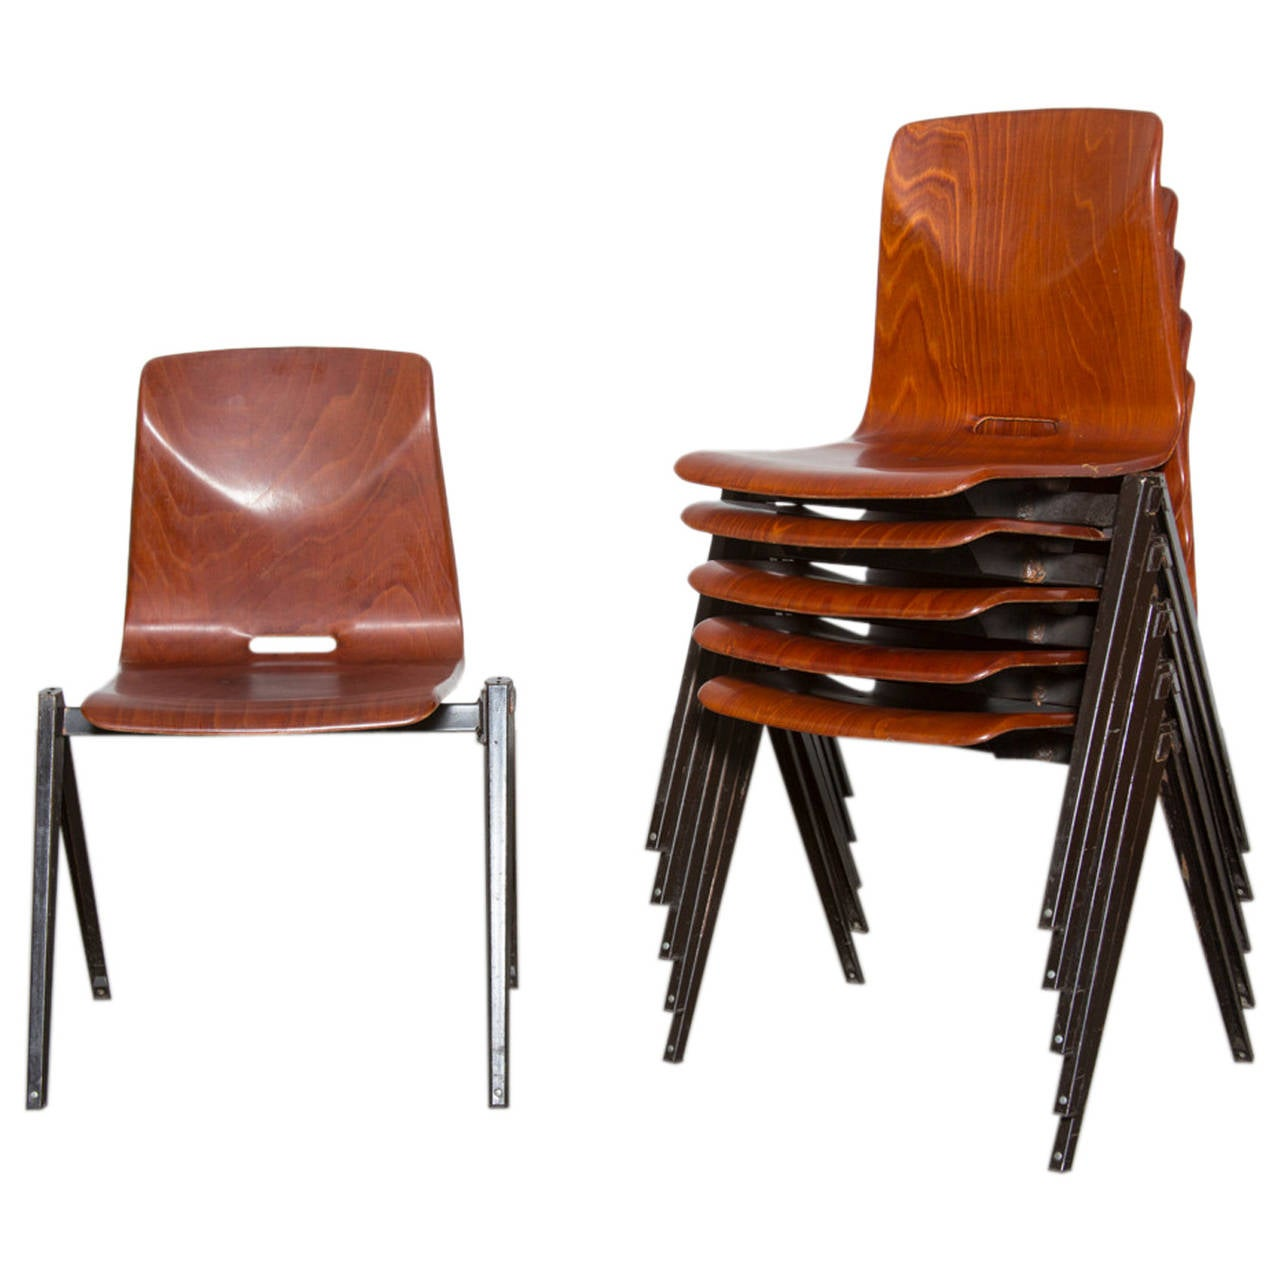 Prouve Style Single Shell Stacking Chair